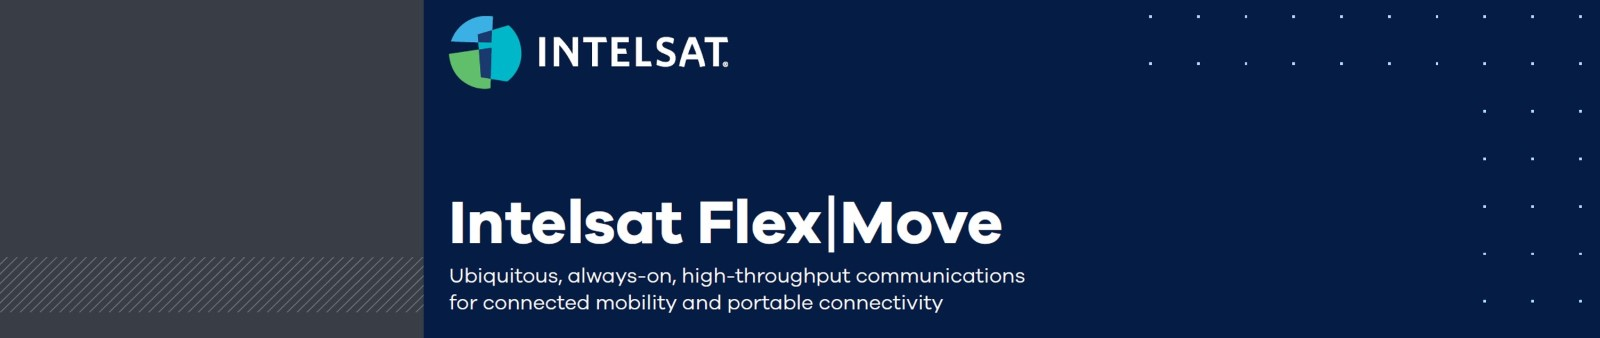 Intelsat Flex Move